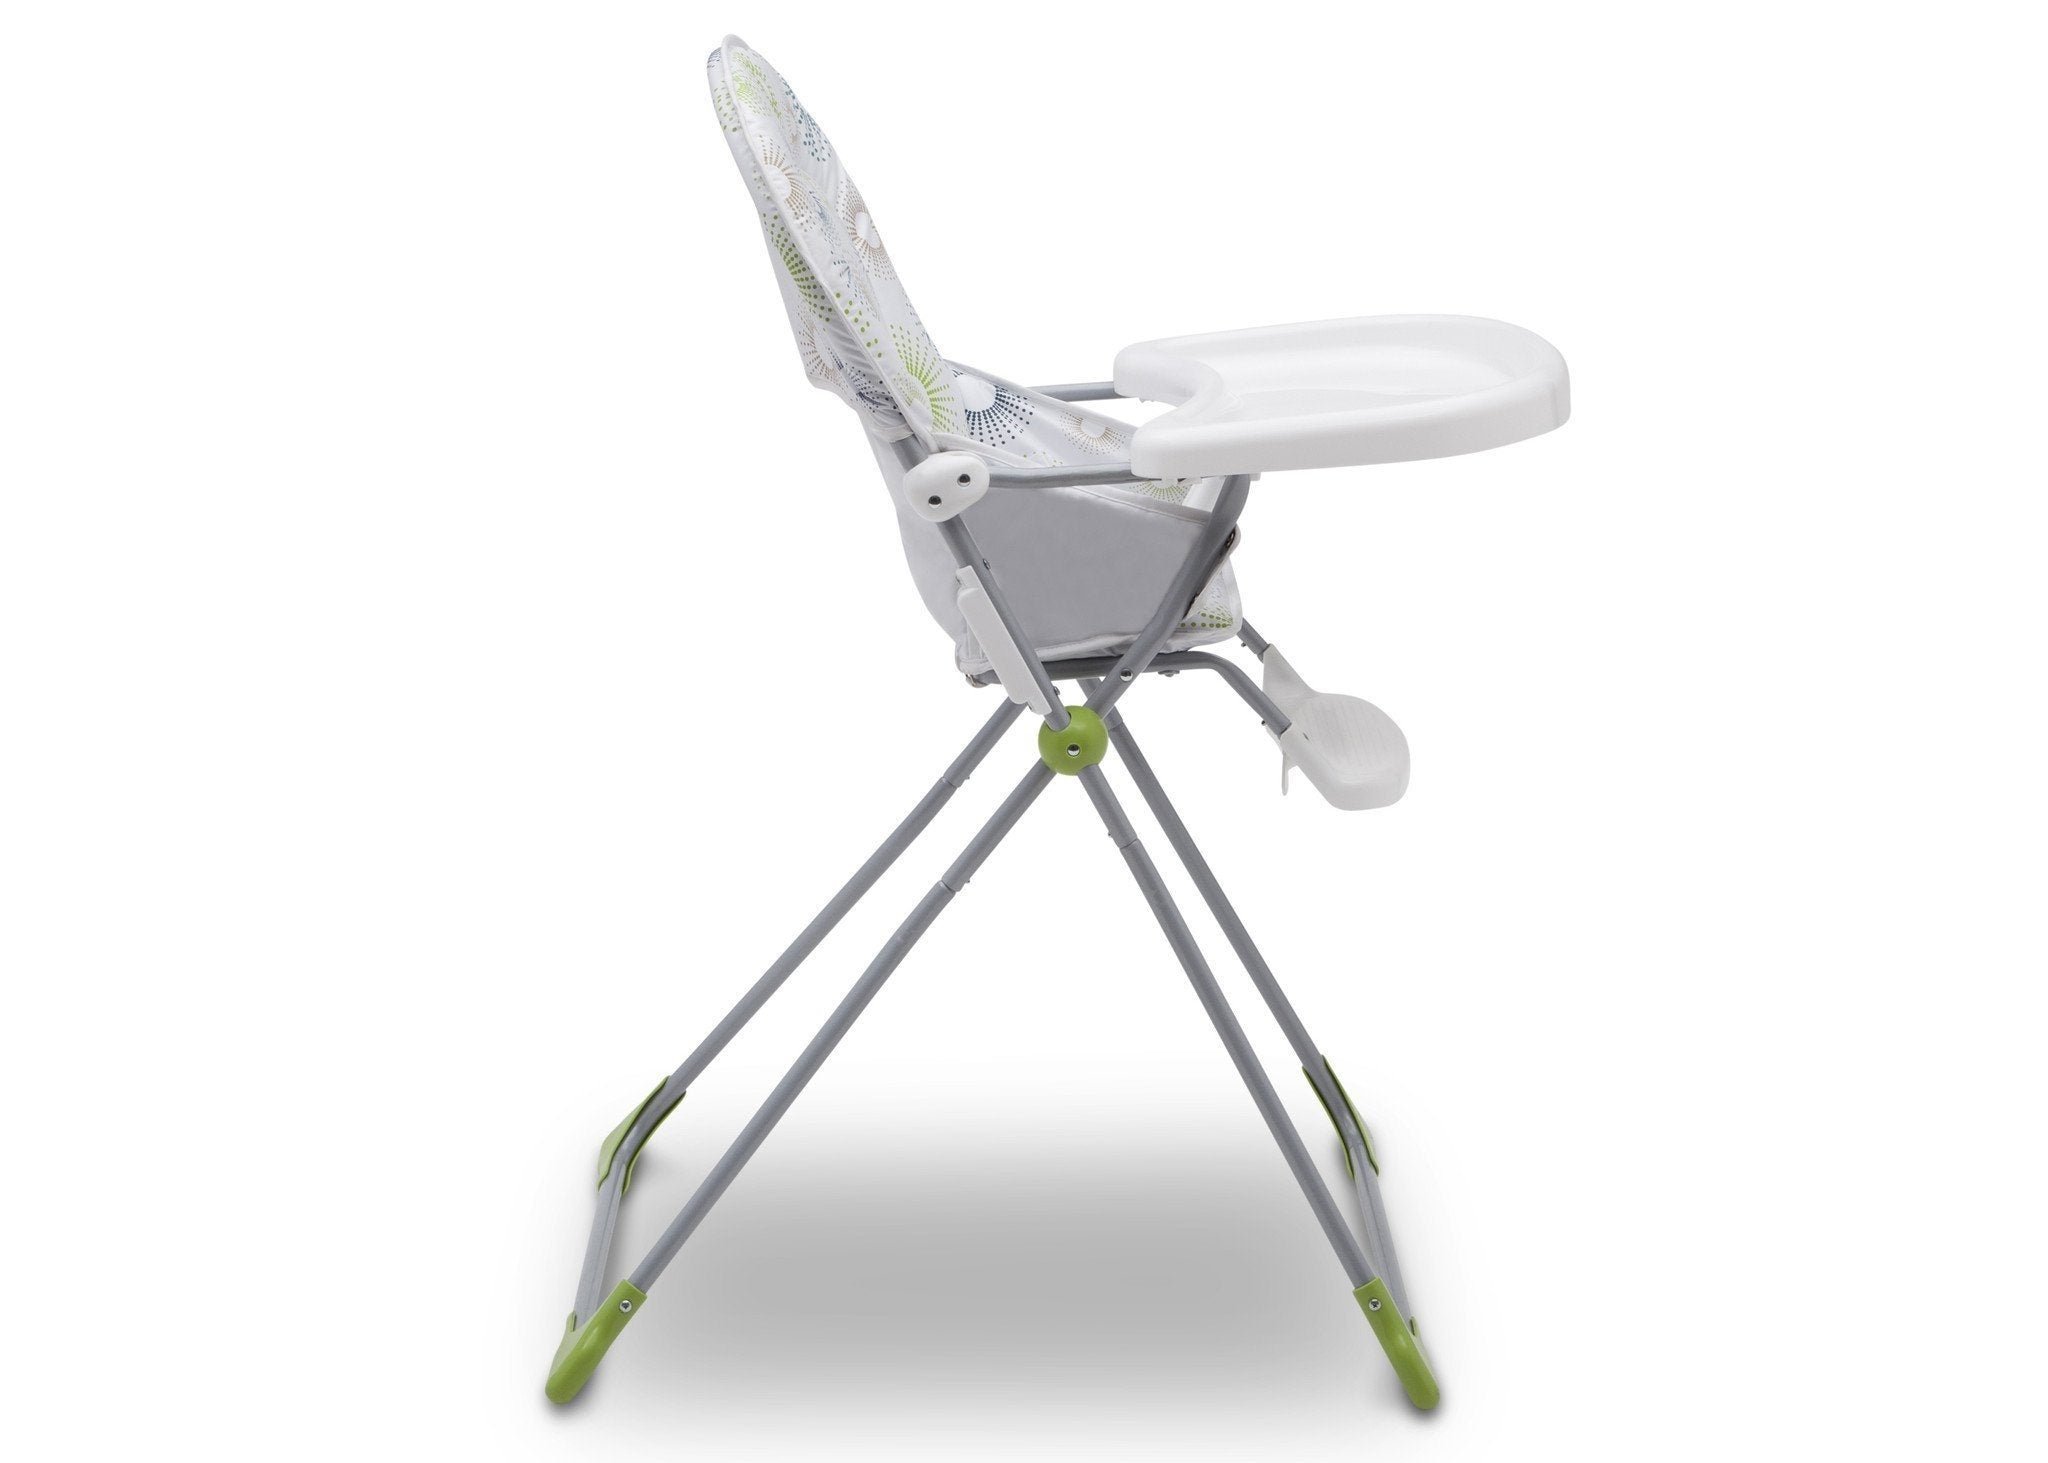 Delta Children EZ Fold High Chair Starburst (388) Adjustable Tray, Side View, a4a